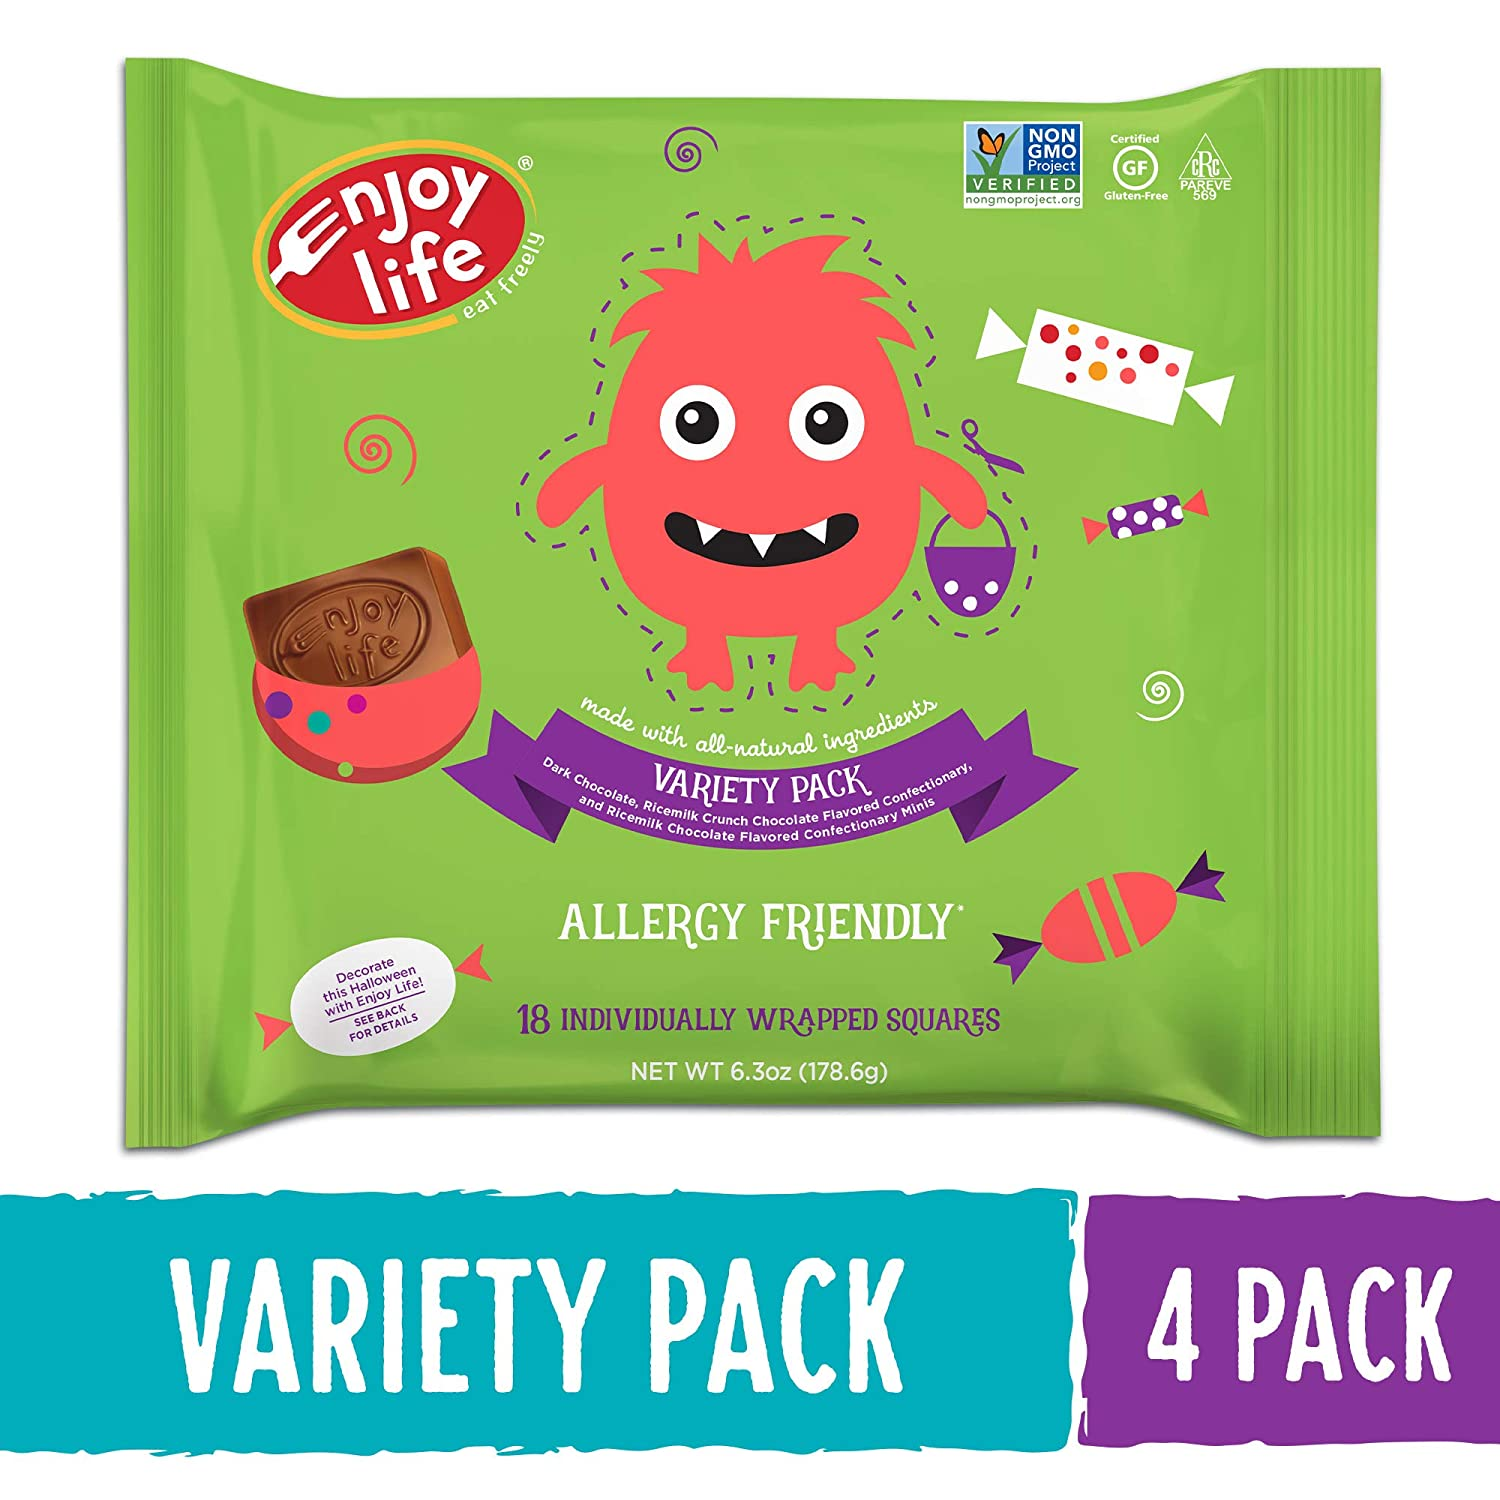 bag of Enjoy Life allergy friendly chocolates with cute monster illustration for Halloween